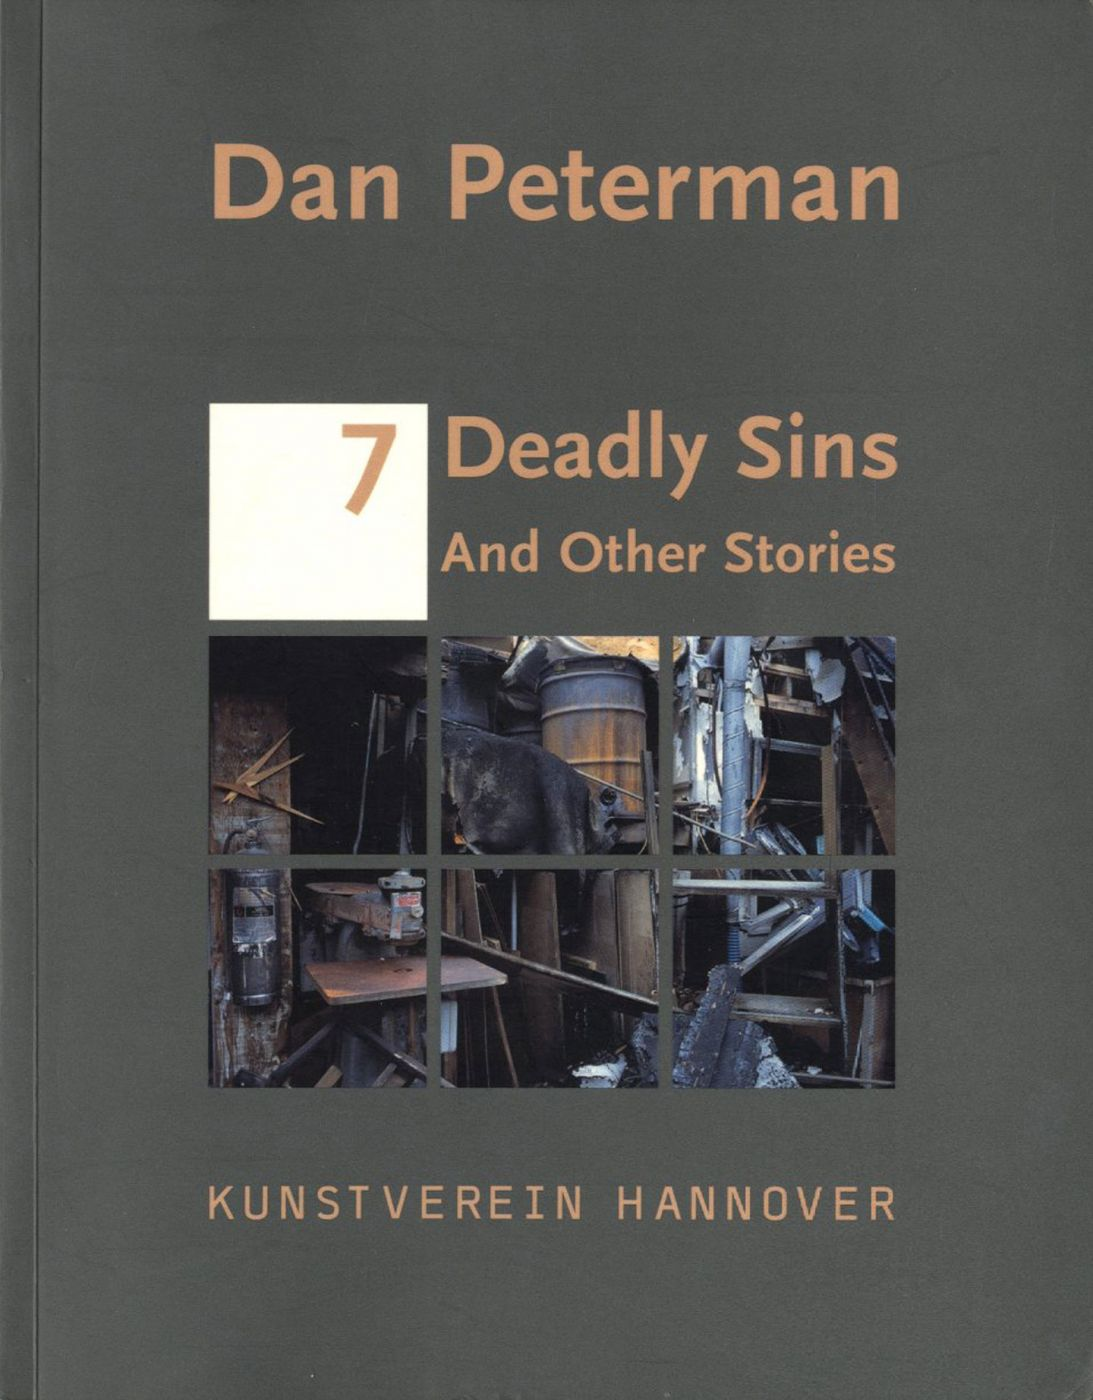 Dan Peterman: 7 Deadly Sins and Other Stories